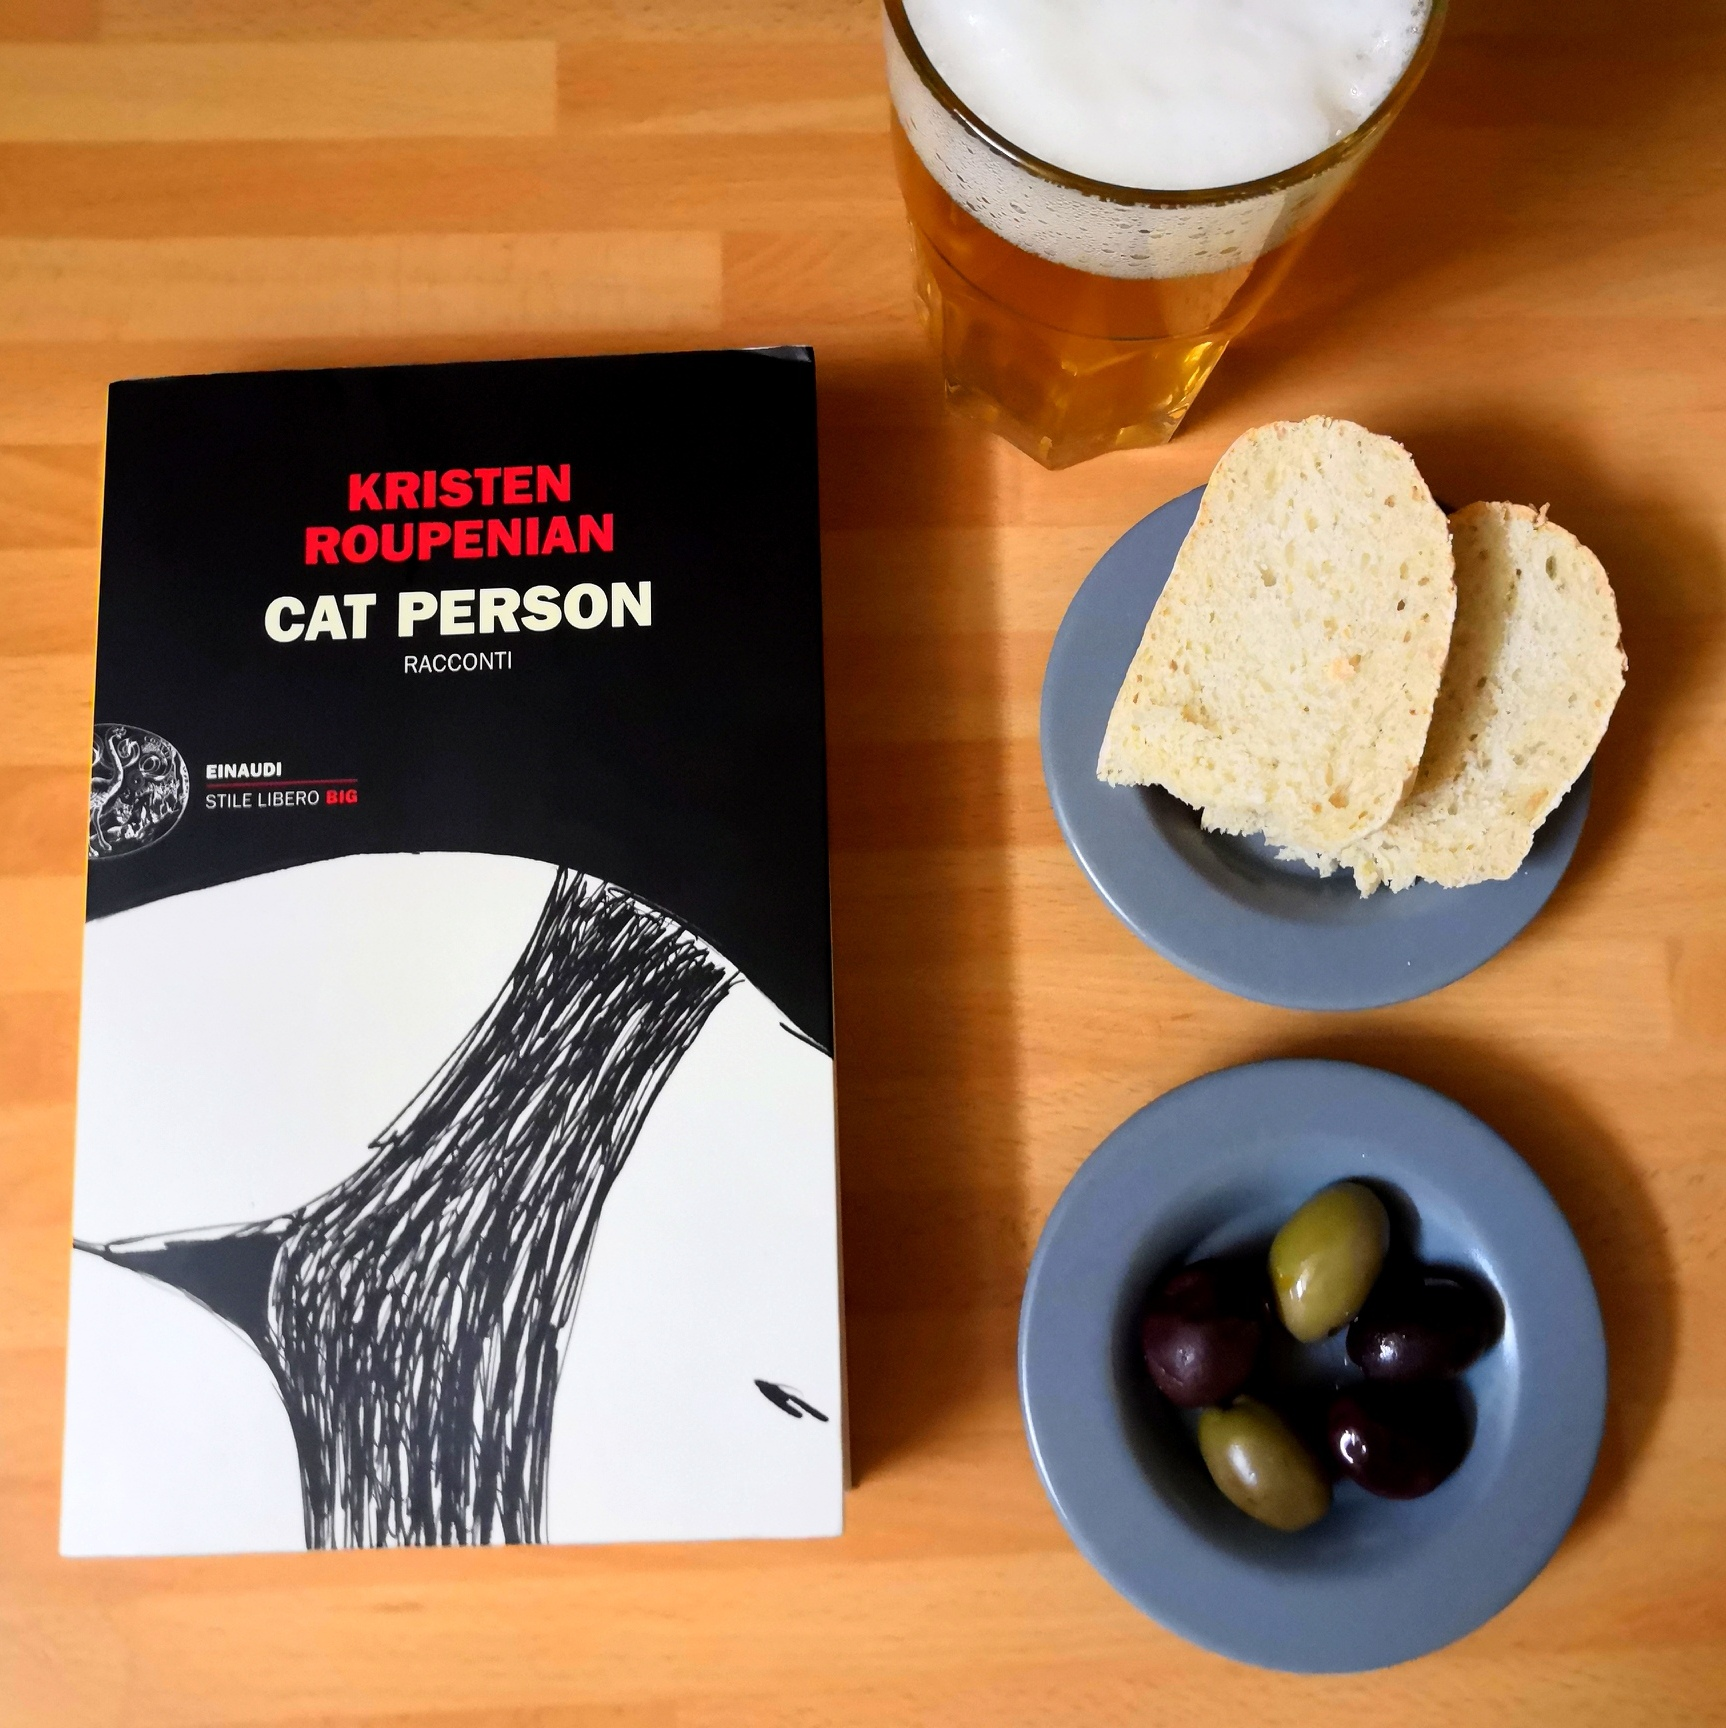 Cat Person – Kristen Roupenian